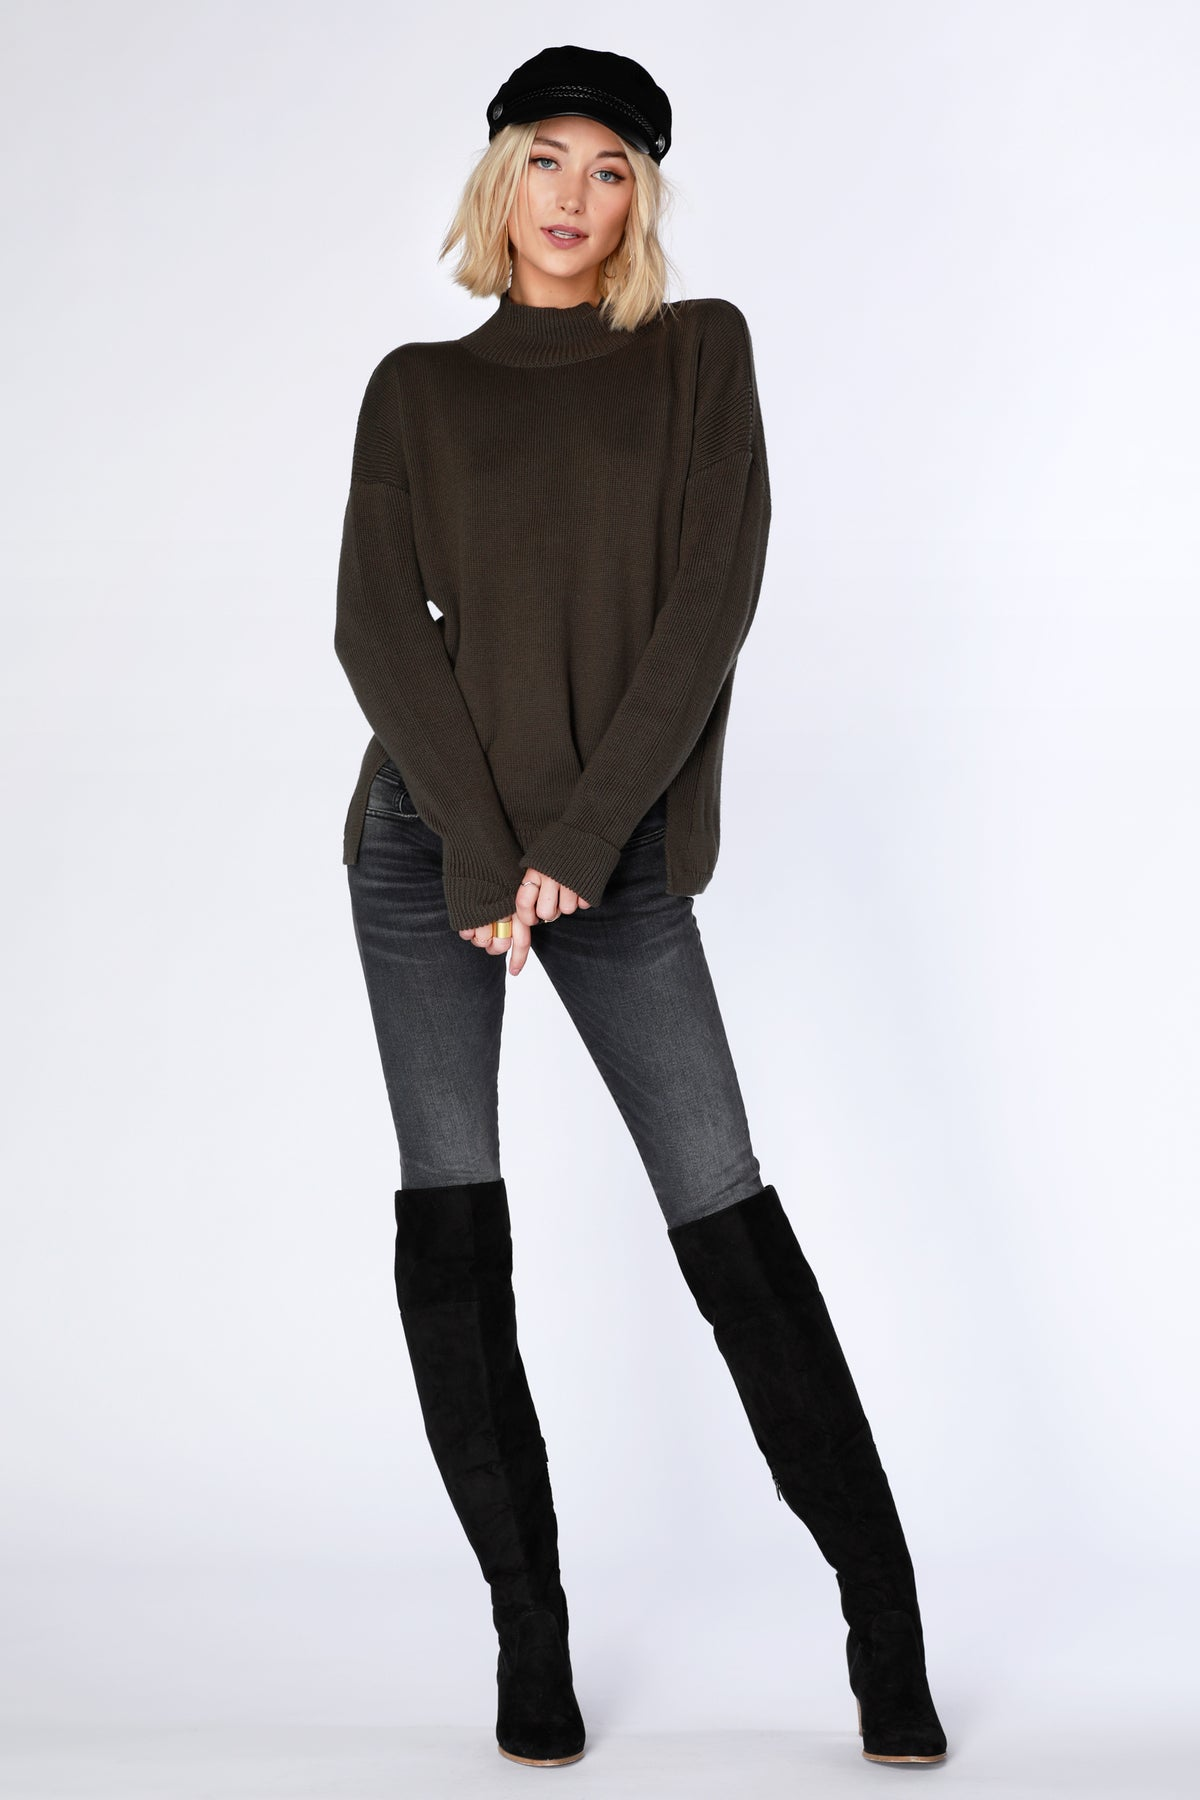 Turtleneck Sweater - bobi Los Angeles